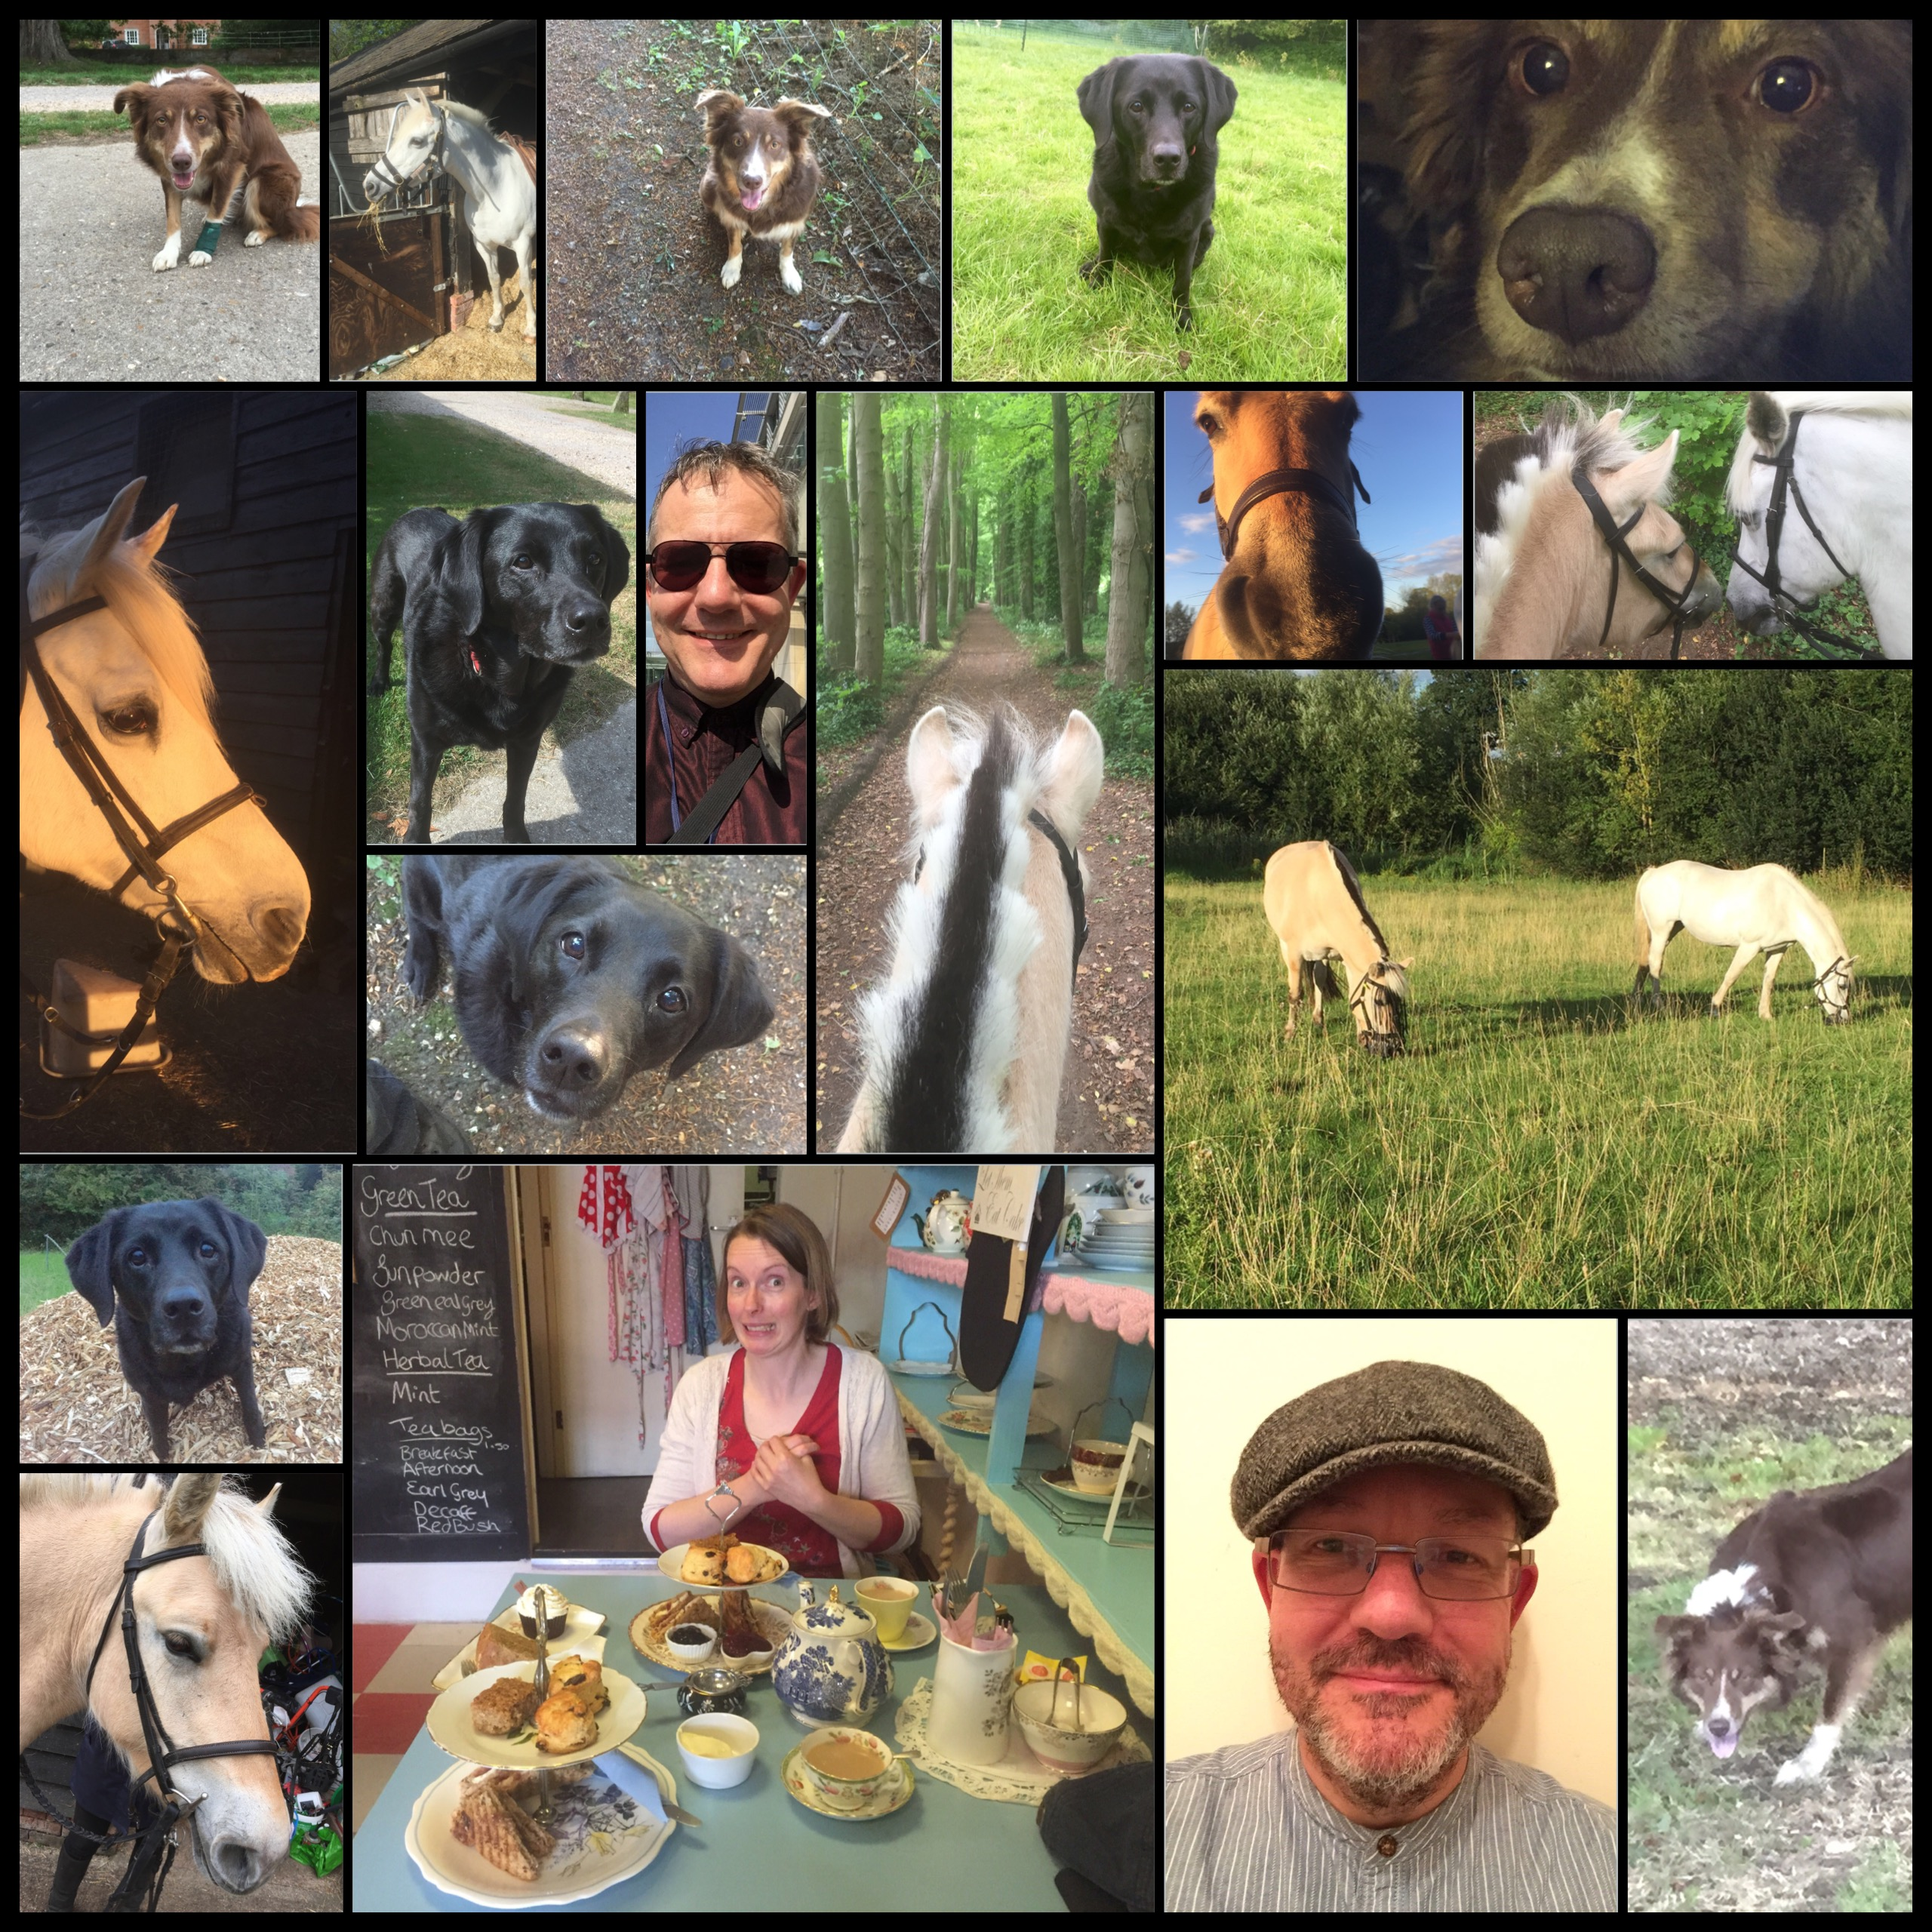 Montage of dogs and horses